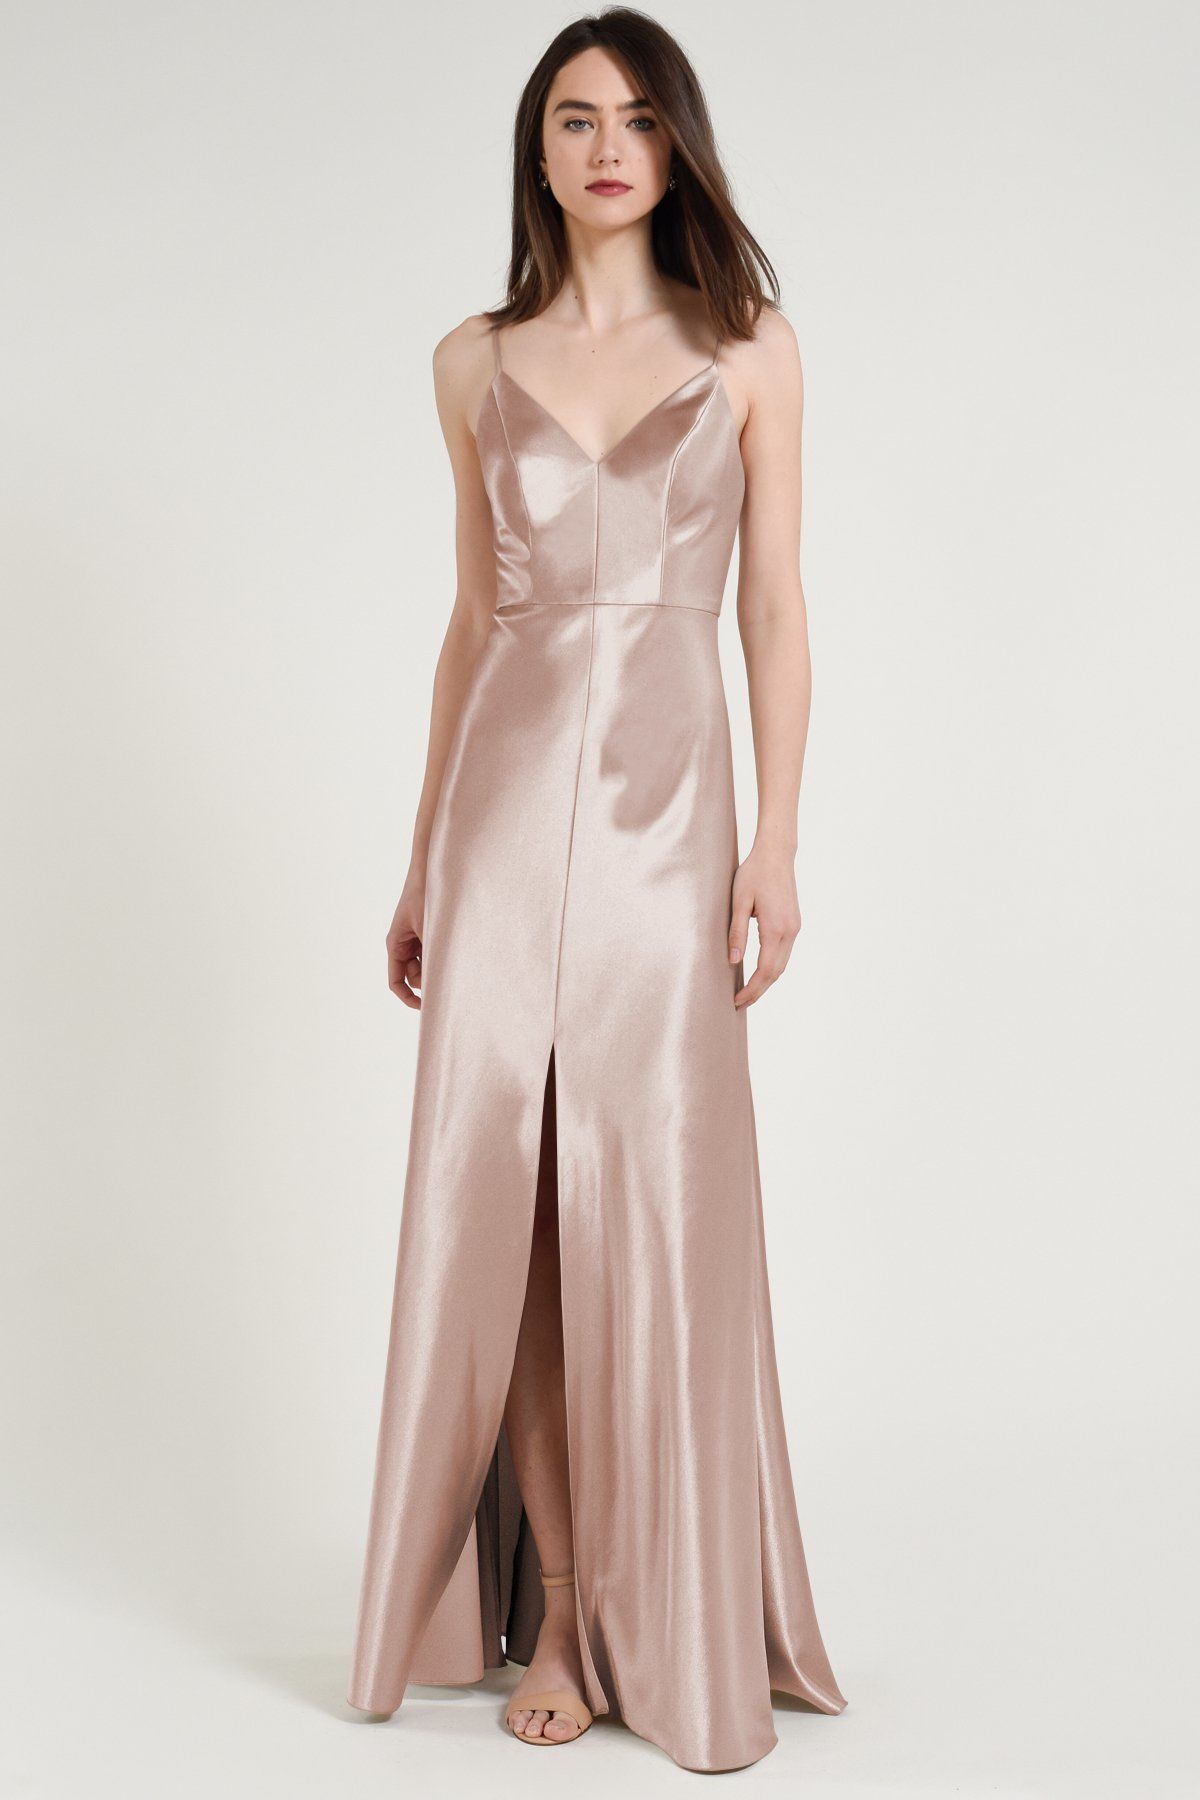 Dina Bridesmaids Dress by Jenny Yoo - Whipped Apricot